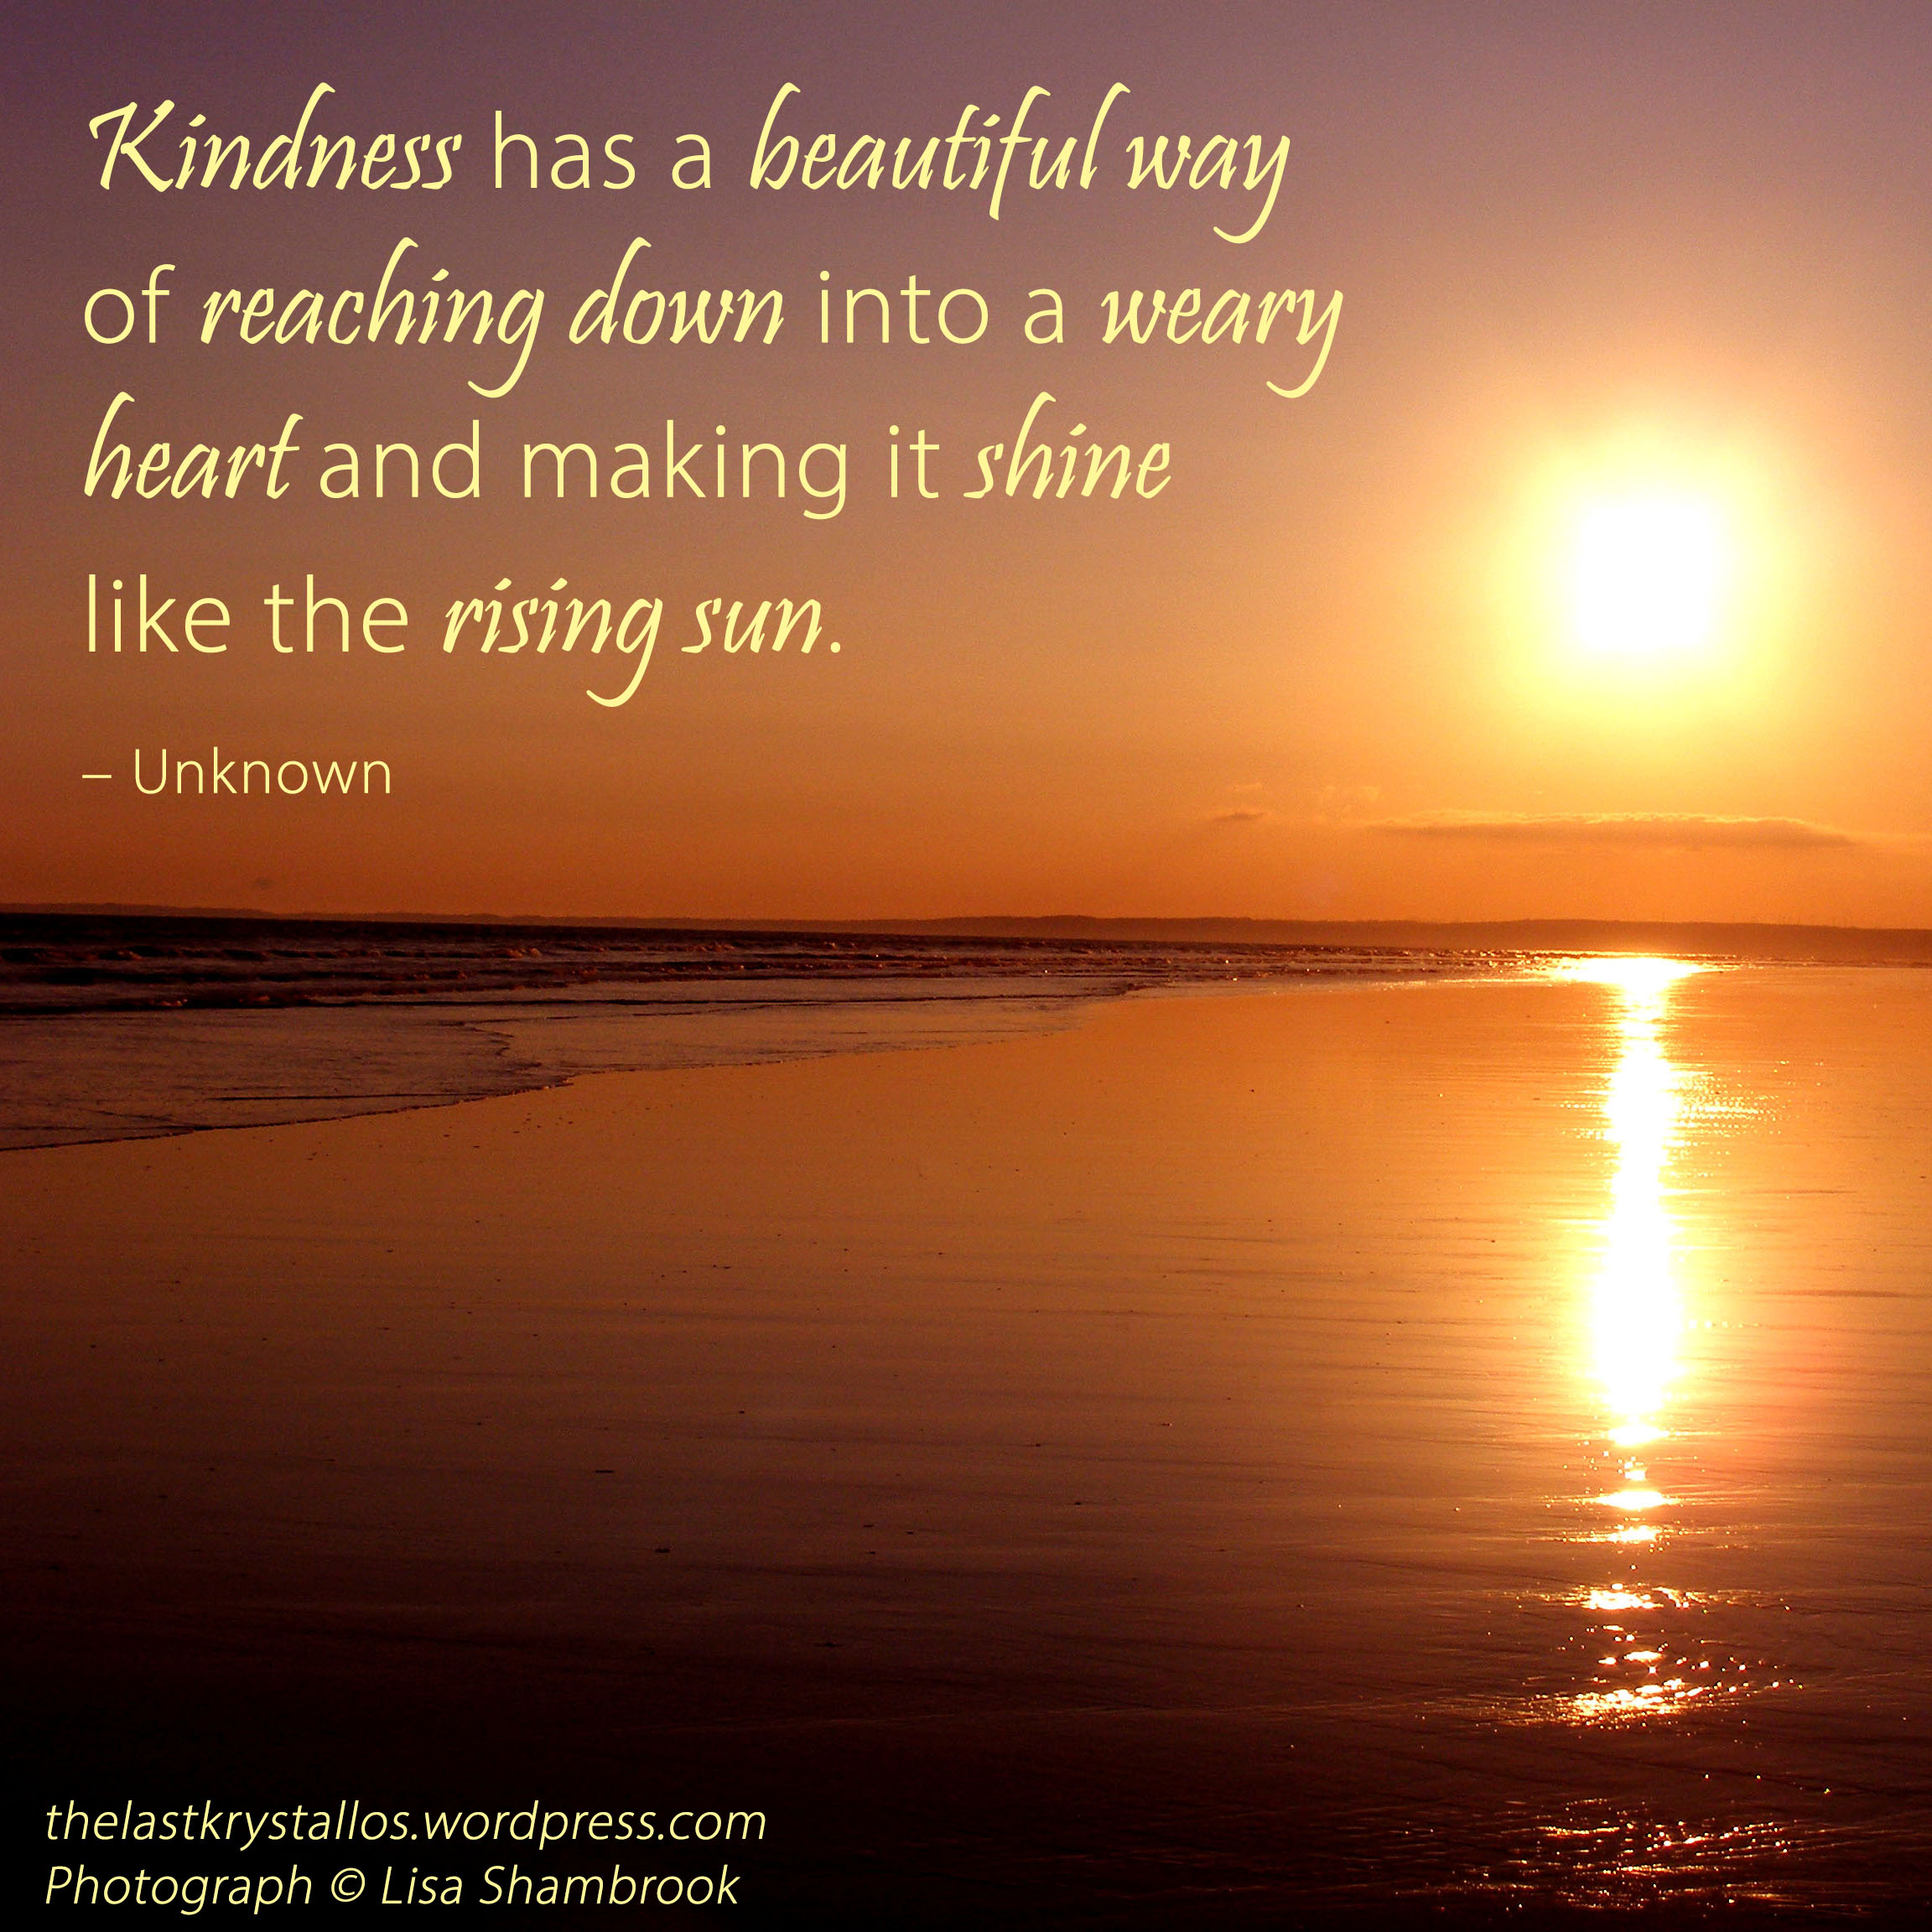 Kindness-has-a-beautiful-way-of-reaching-down-unknown-the-last-krystallos